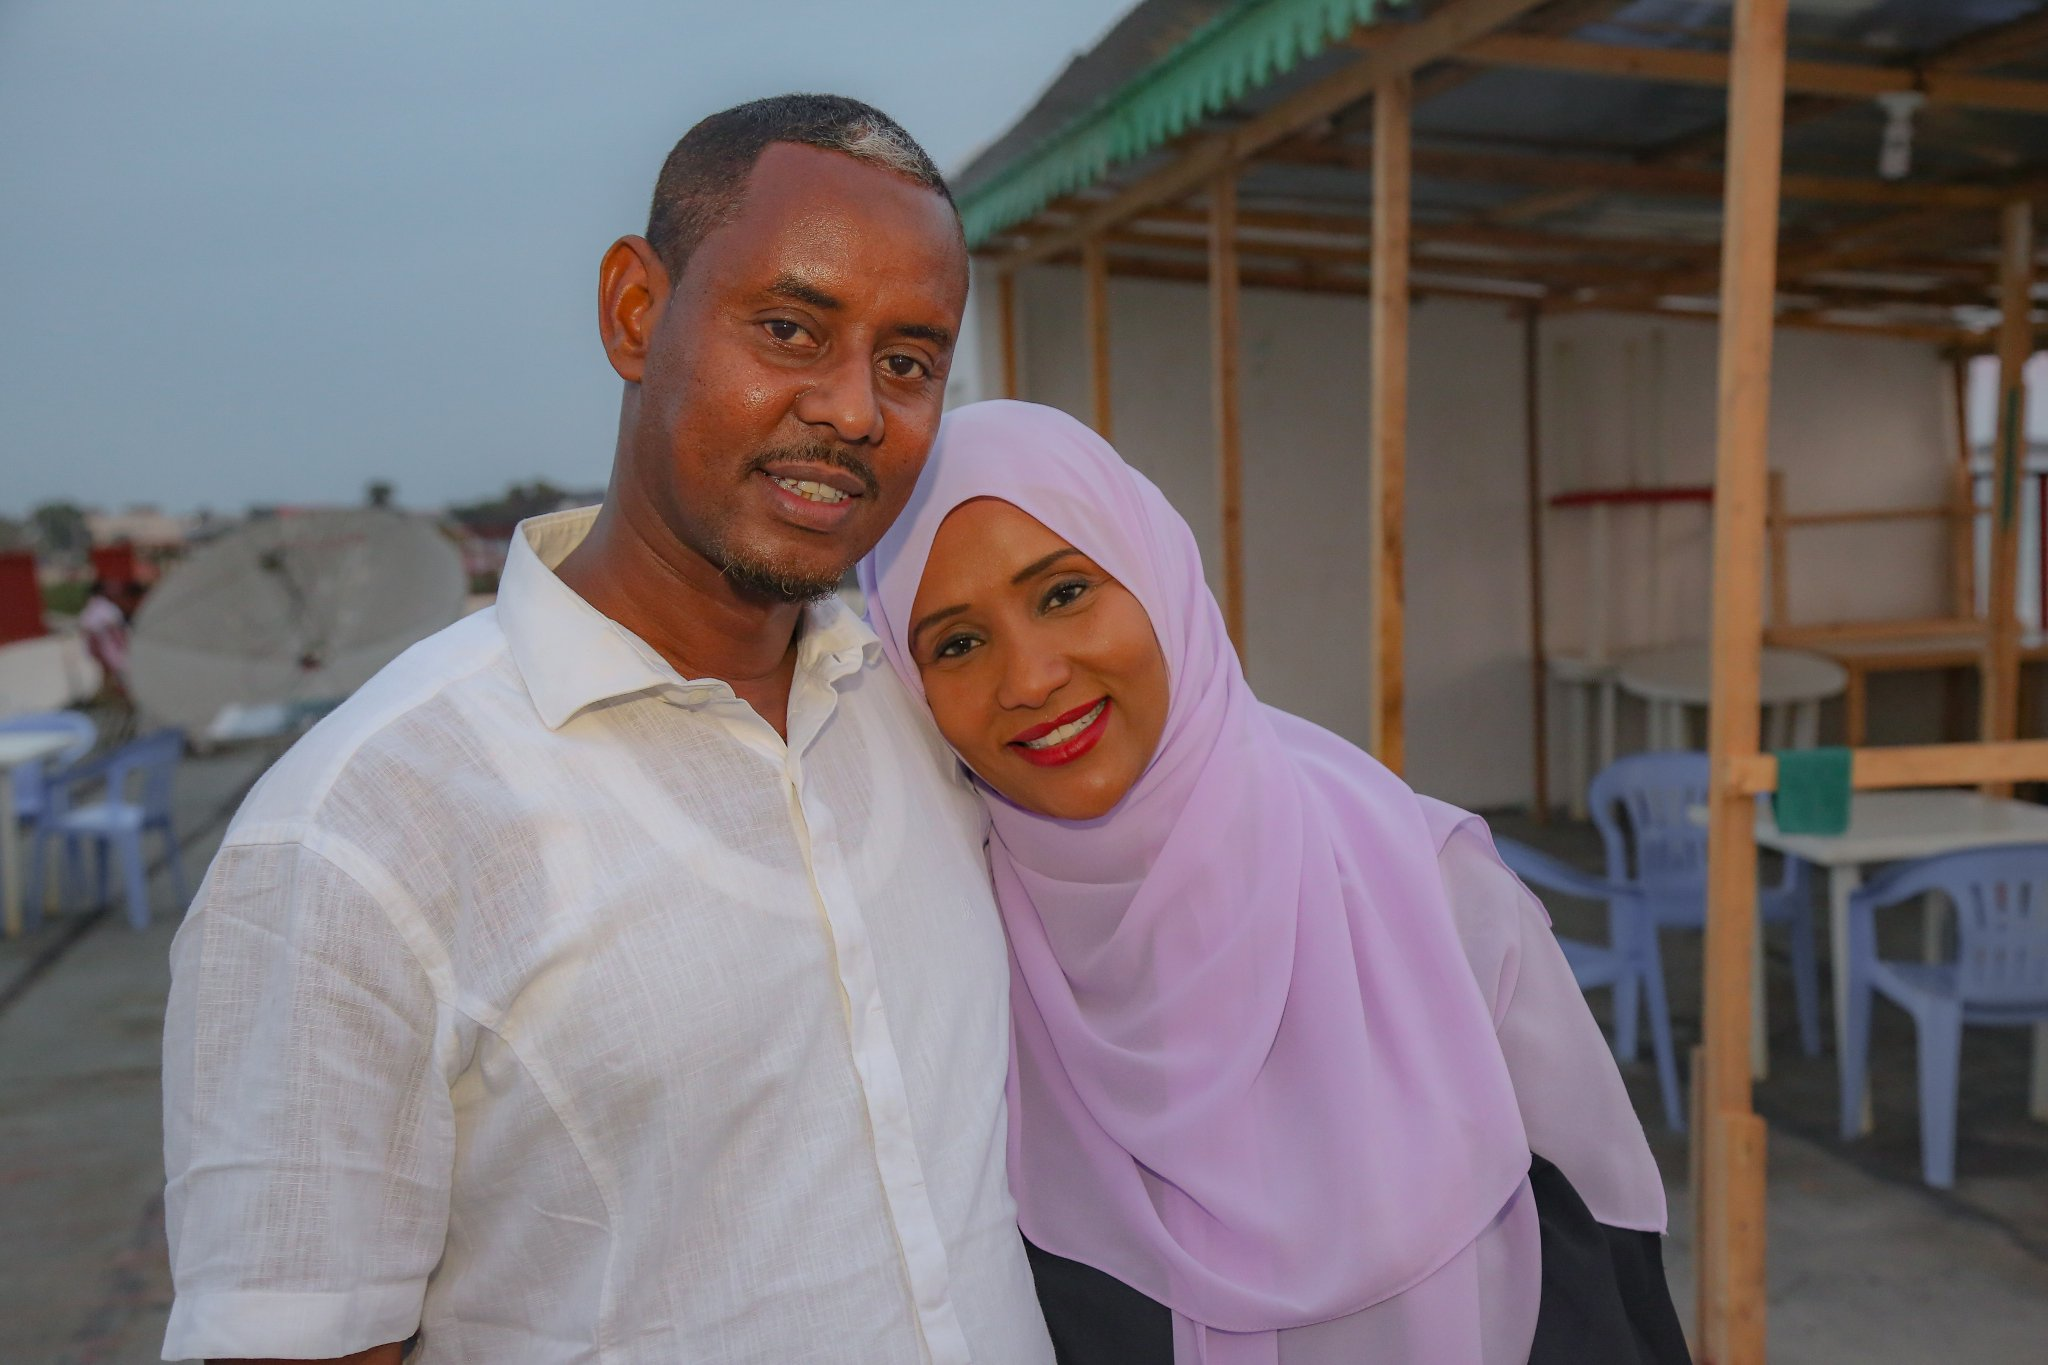 Hodan Nayaleh and her husband Farid Jama Suleiman